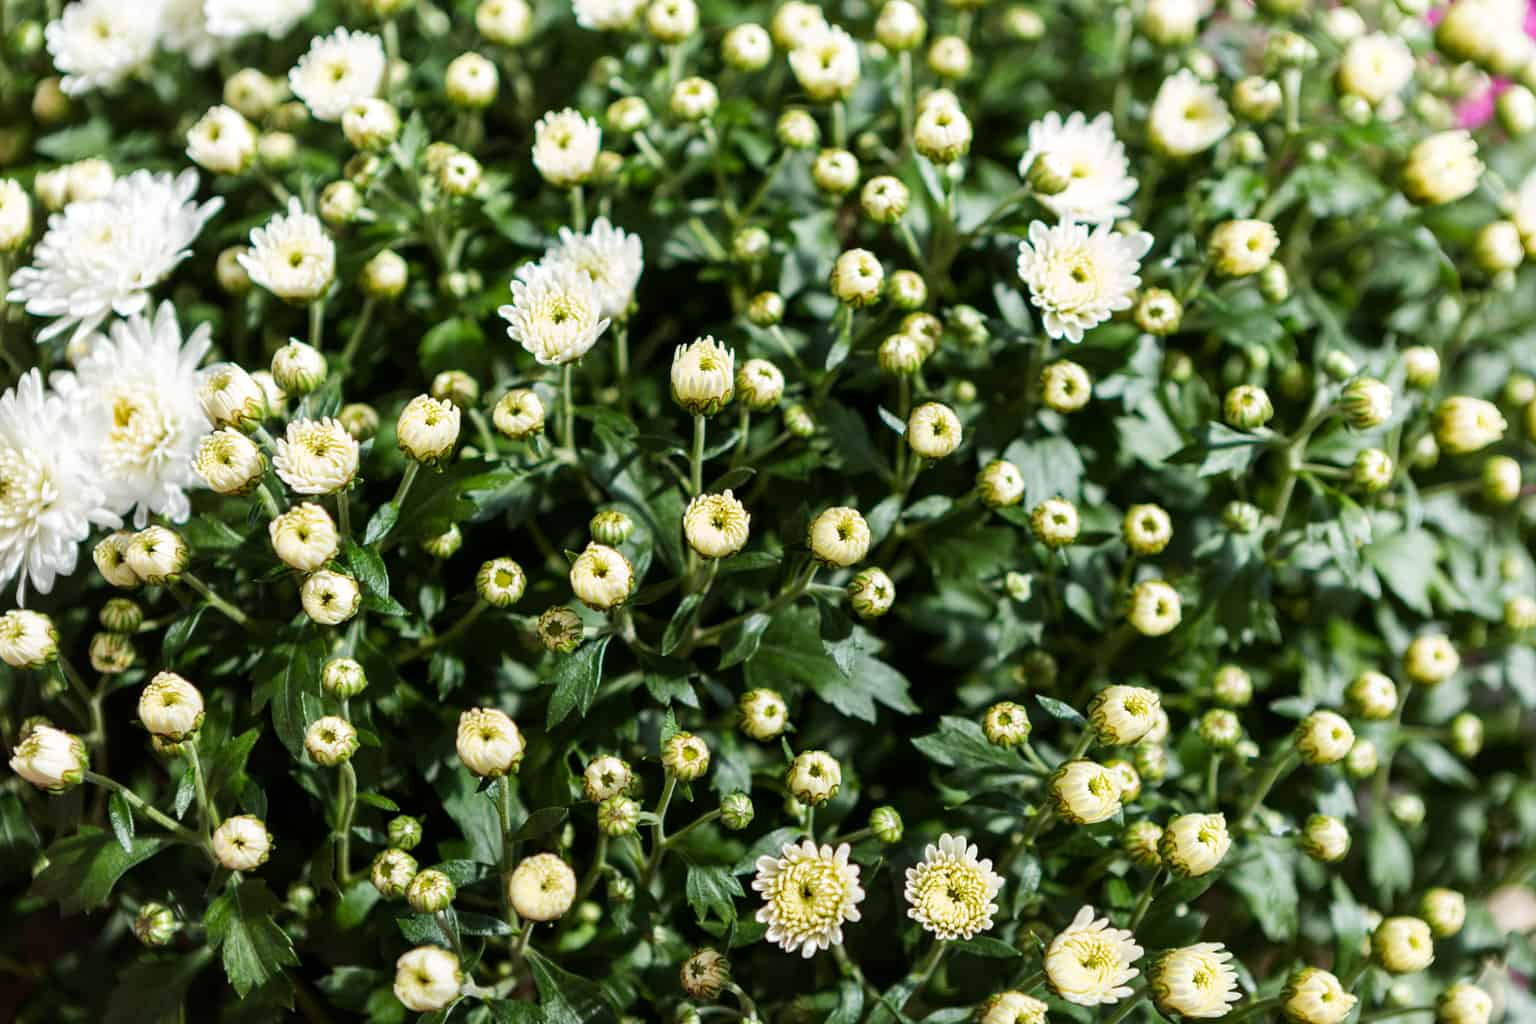 fall mums with flowers tightly closed